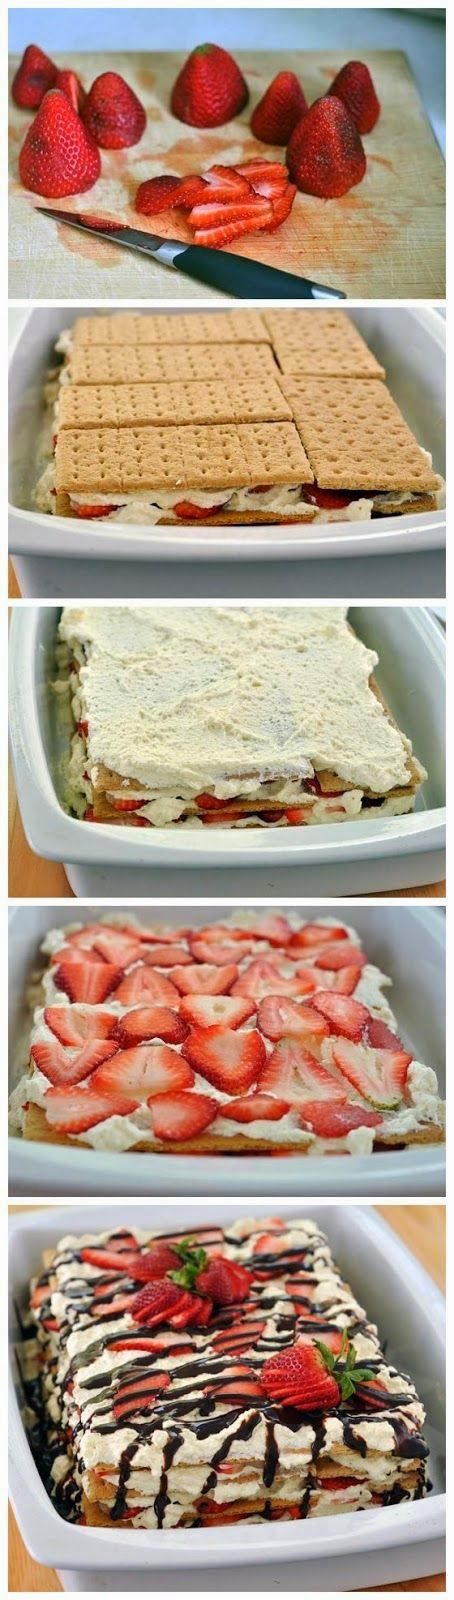 How To No-Bake Strawberry Icebox Cake